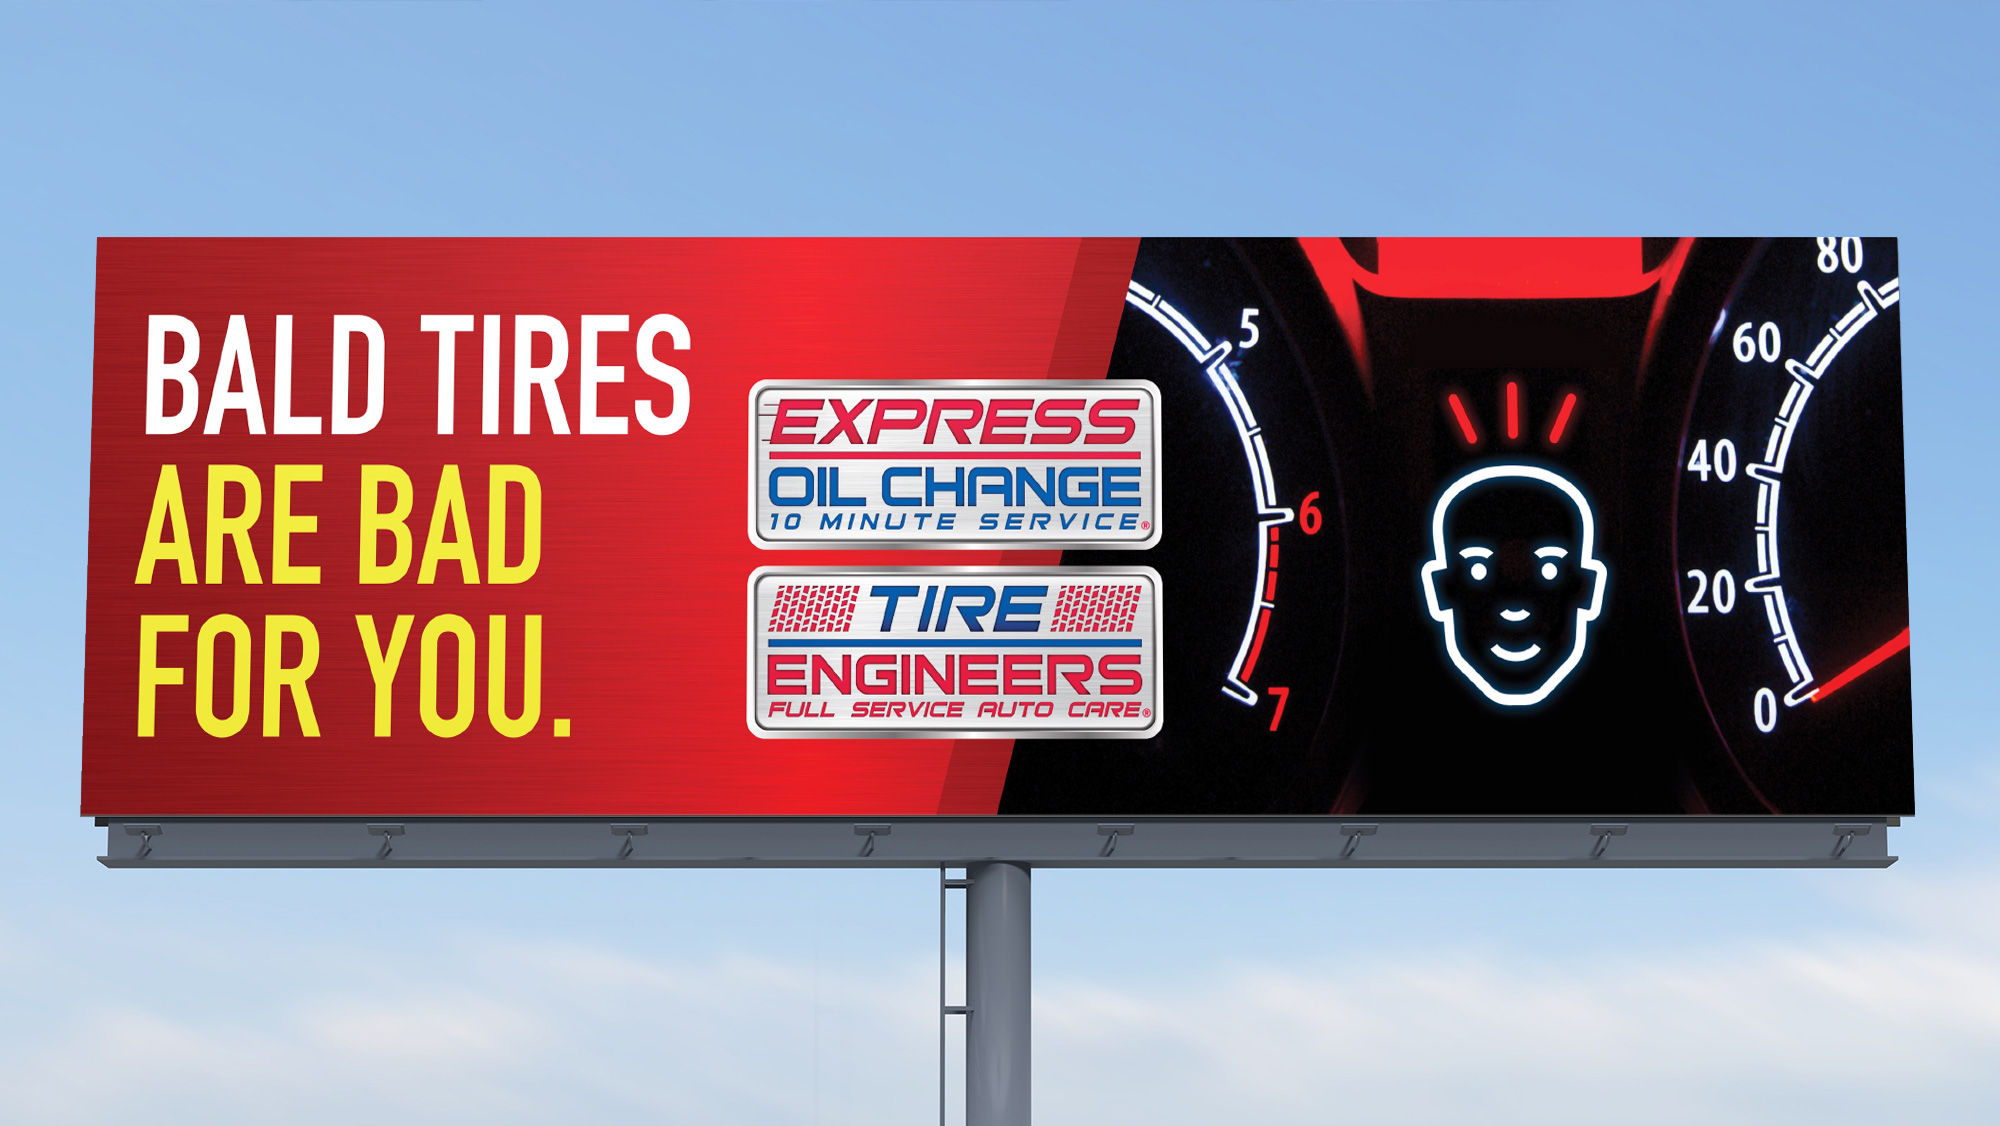 Express Oil Change Billboard